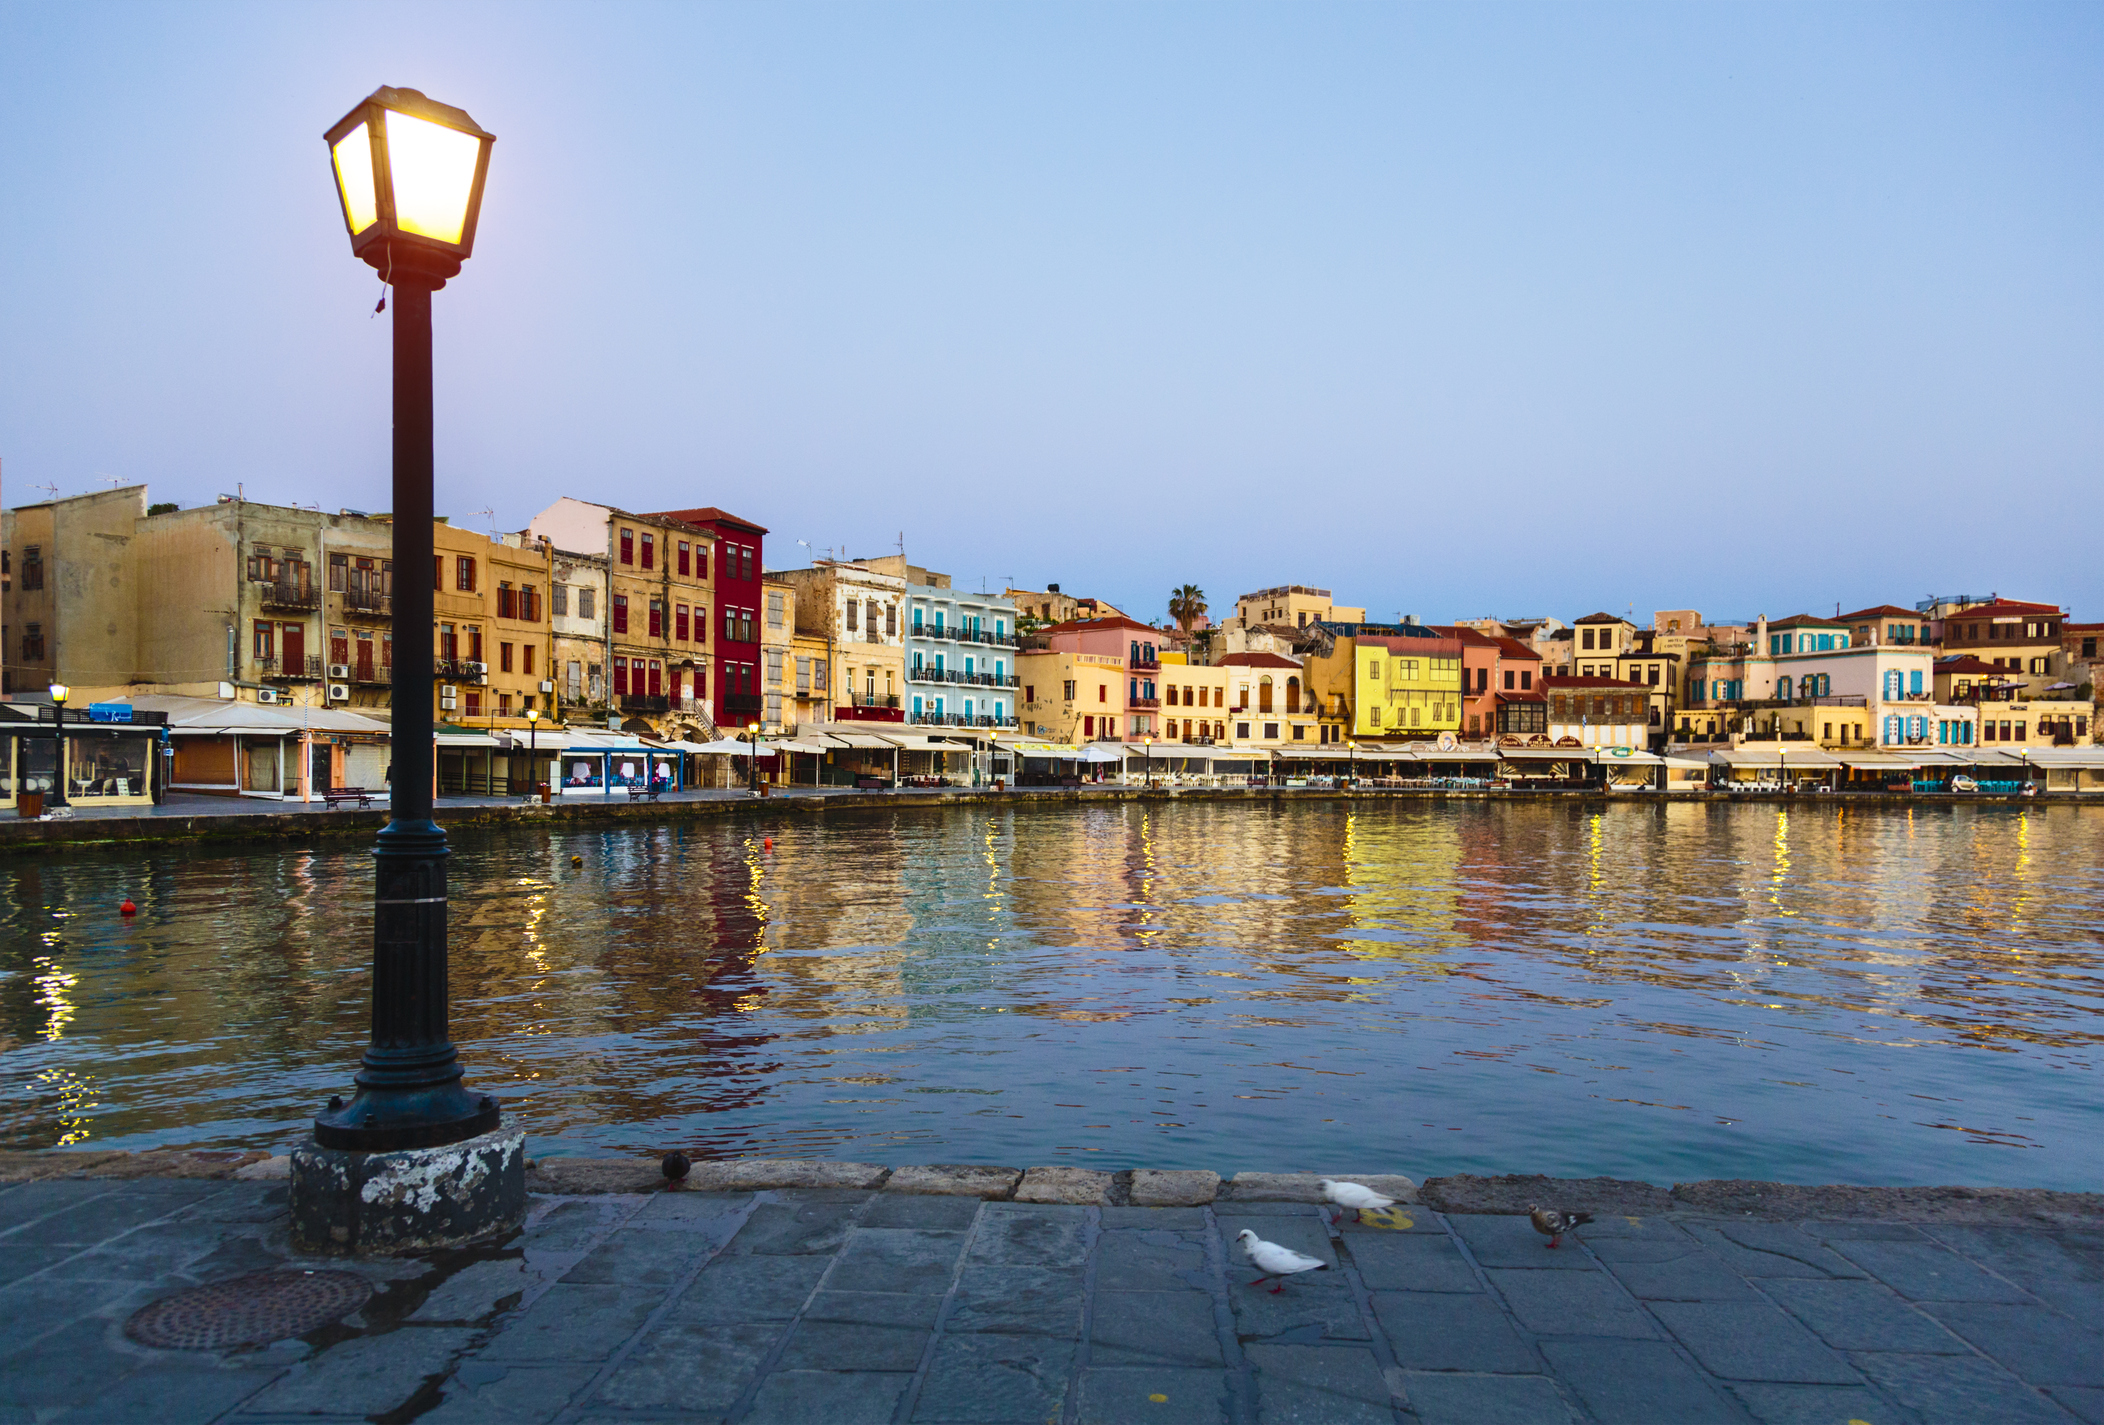 5 Chania Don't miss out   The 9 Secrets of Crete